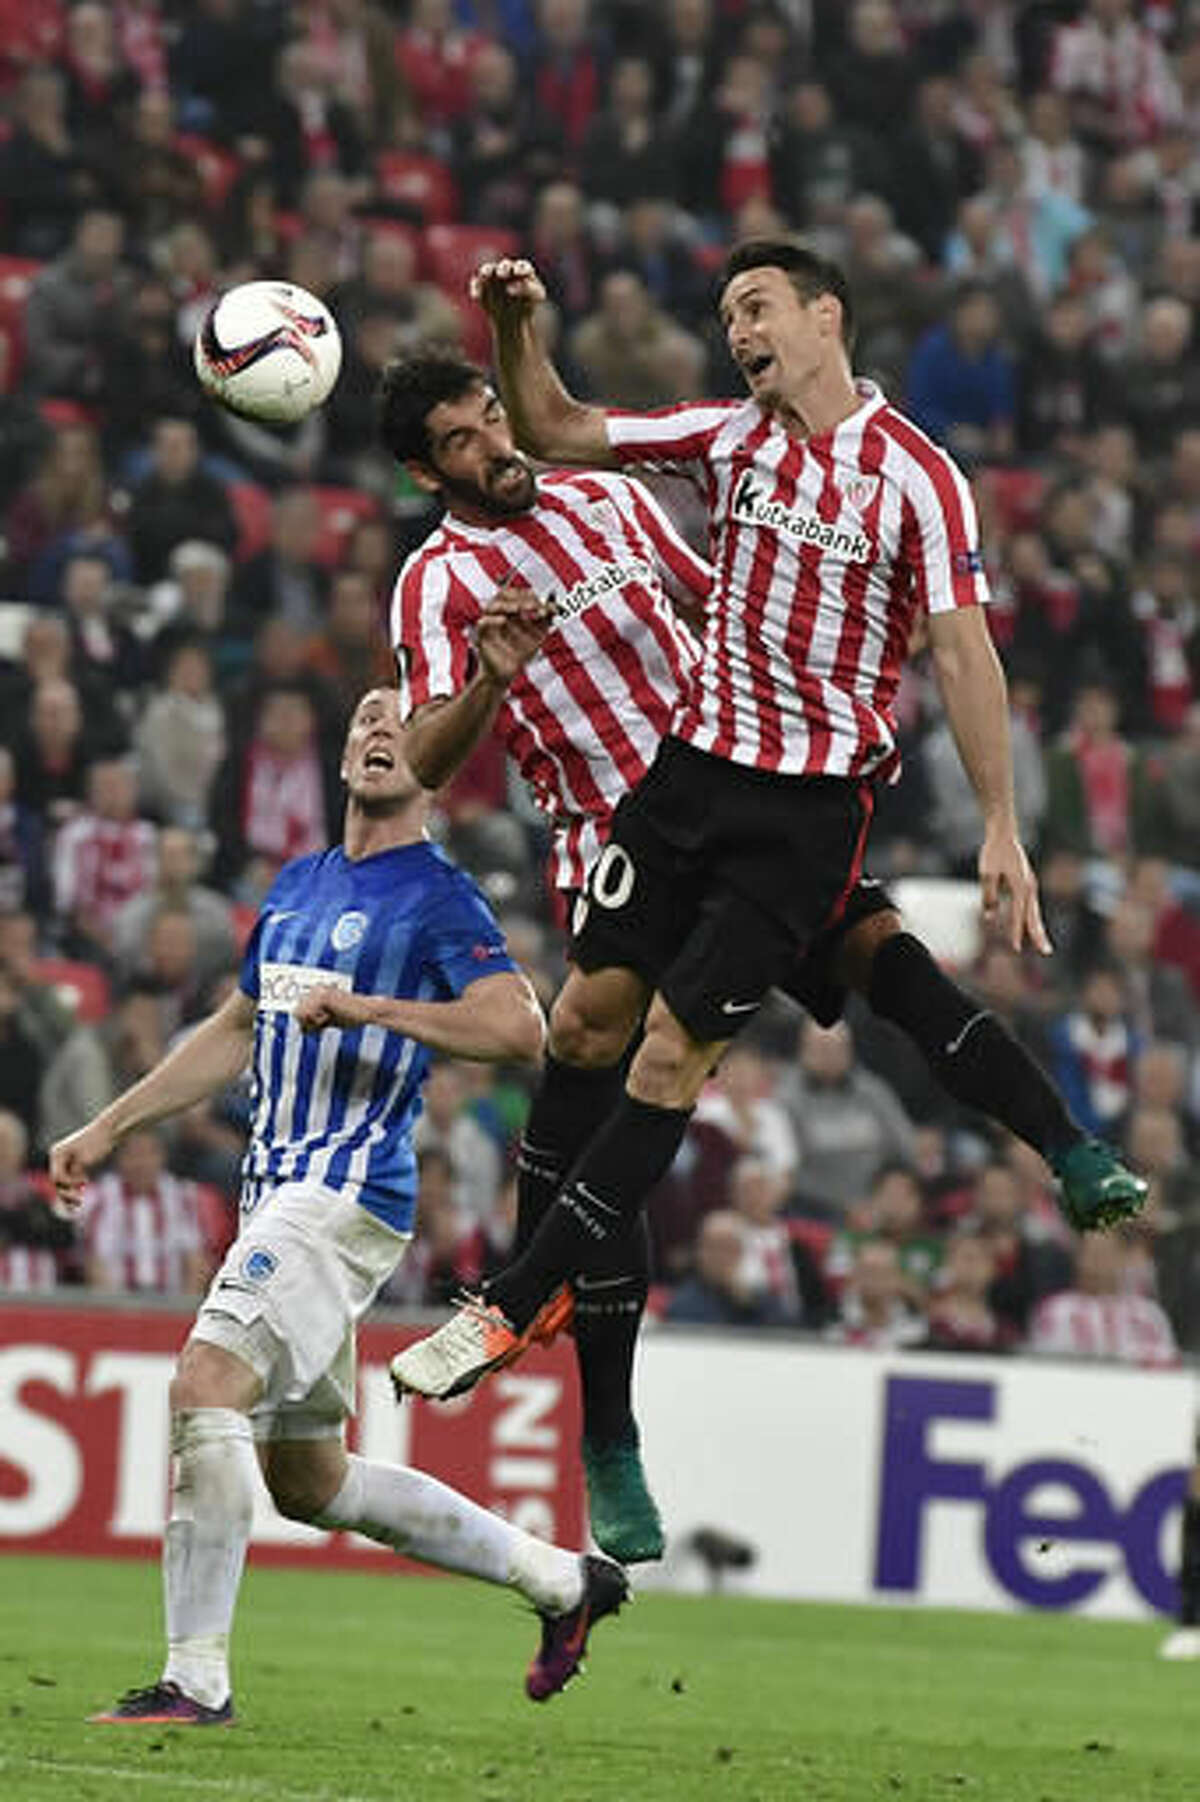 Athletic Bilbao's Aritz Aduriz, right, heads the ball beside teammate Raul Garcia, center, and Genk's Bojan Nasticto during the Europa League Group F soccer match between Athletic Bilbao and Genk, at the San Mames stadium, in Bilbao, northern Spain, Thursday, Nov. 3, 2016. (AP Photo/Alvaro Barrientos)